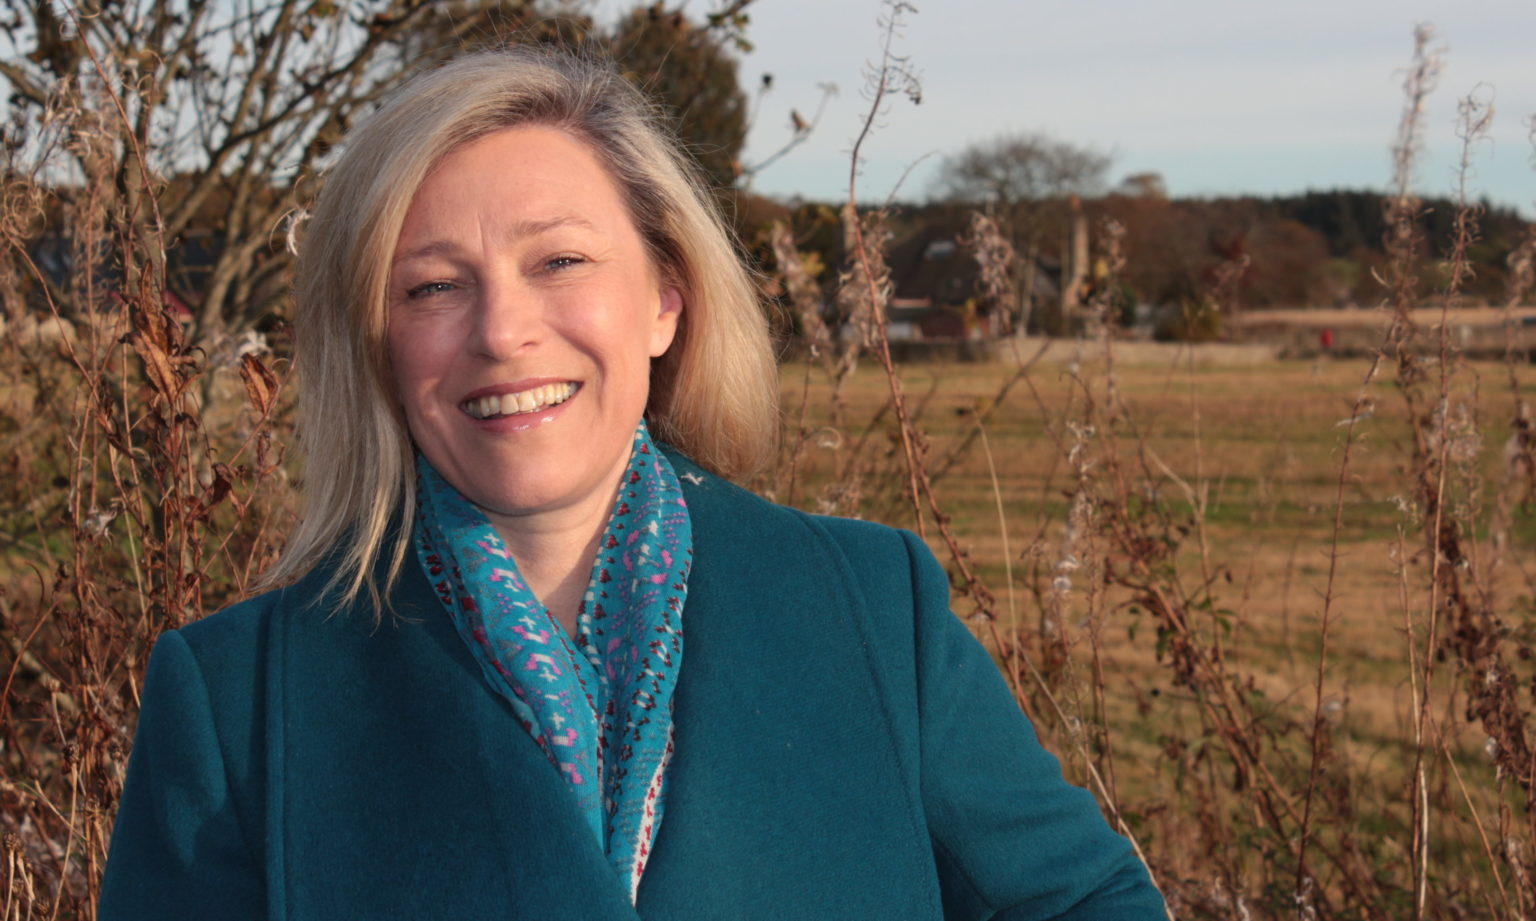 Gillian Martin has welcomed the reopening of a number of venues